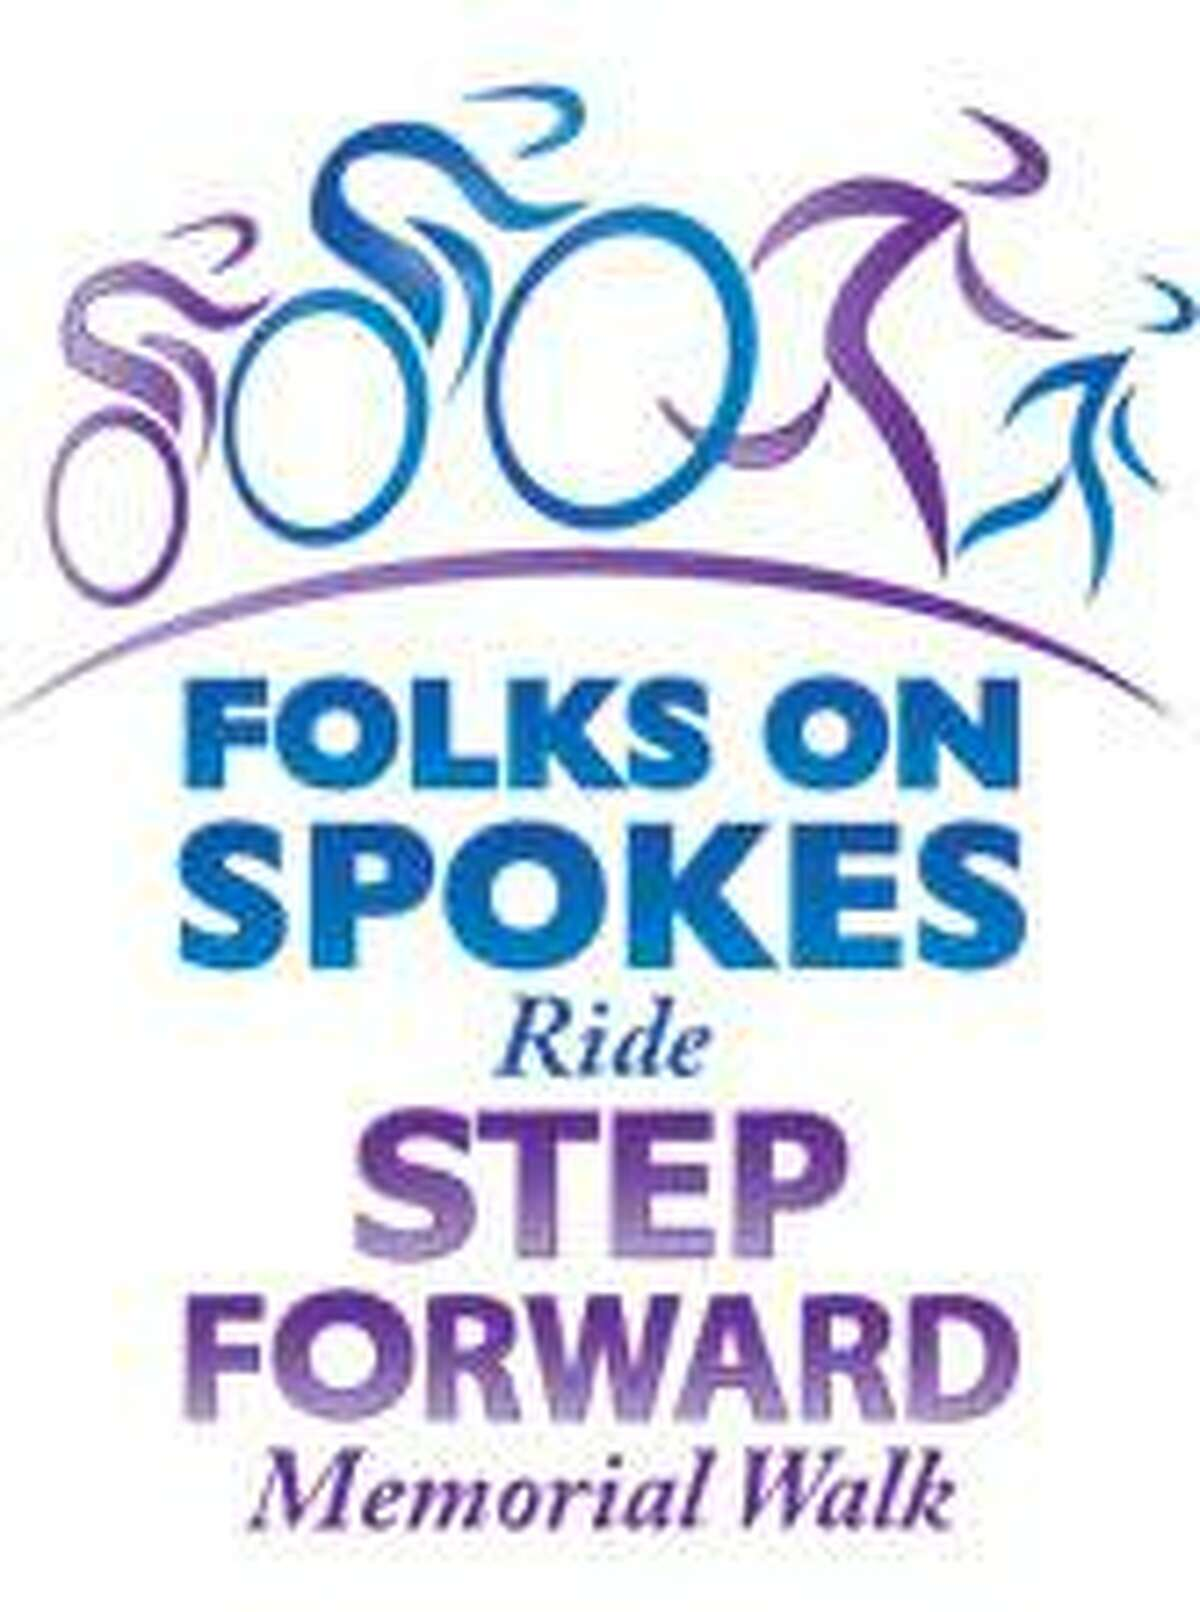 This year's annual Folks on Spokes Ride/Step Forward Memorial Walk fundraiser for Bridges Healthcare will be held virtually. Participants can ride or walk solo or as part of a team (while physically distancing) anytime between Sept. 13-20.